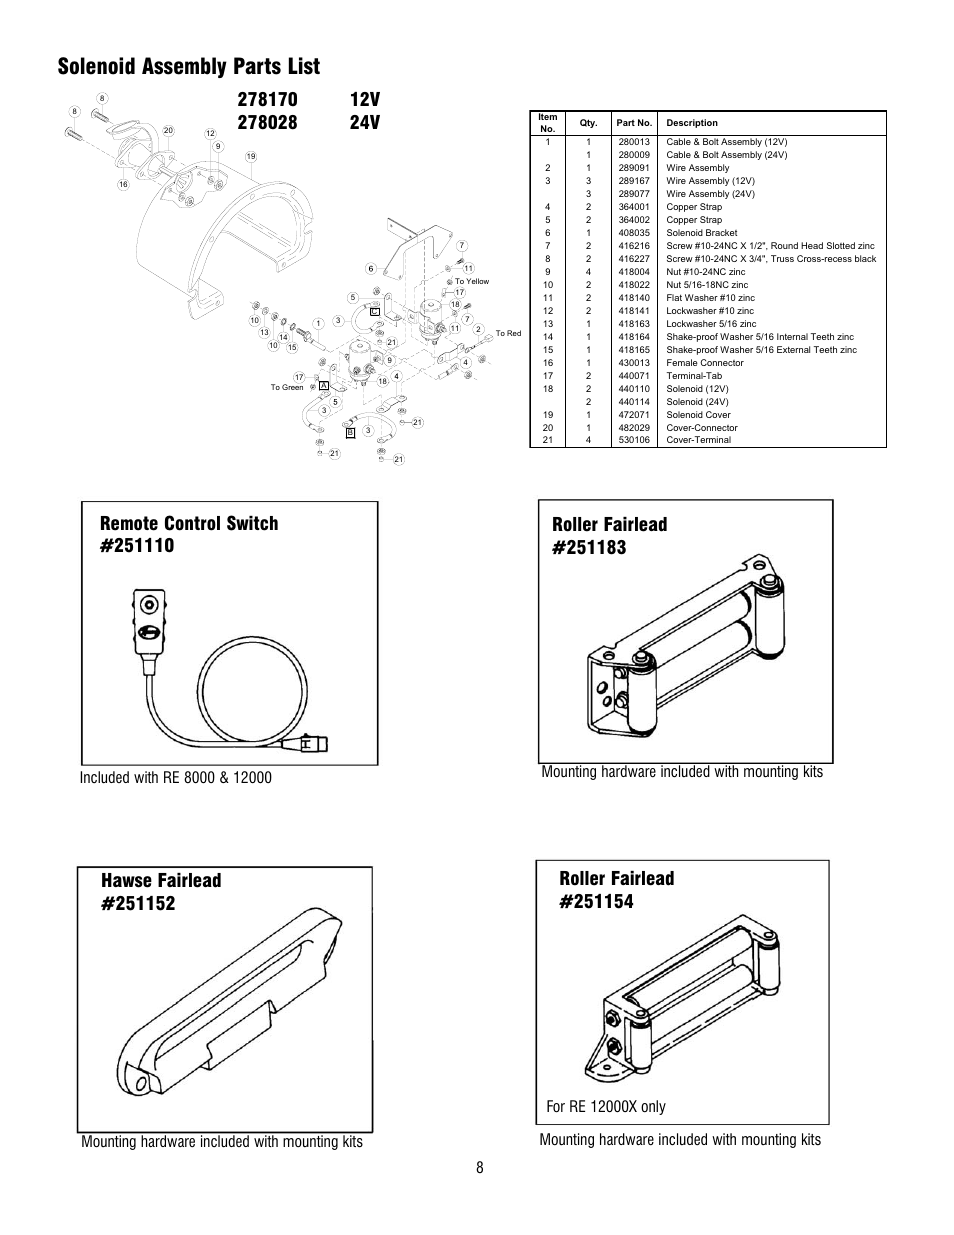 ramsey 9000 winch wiring diagram ramsey re 12000 wiring diagram #4